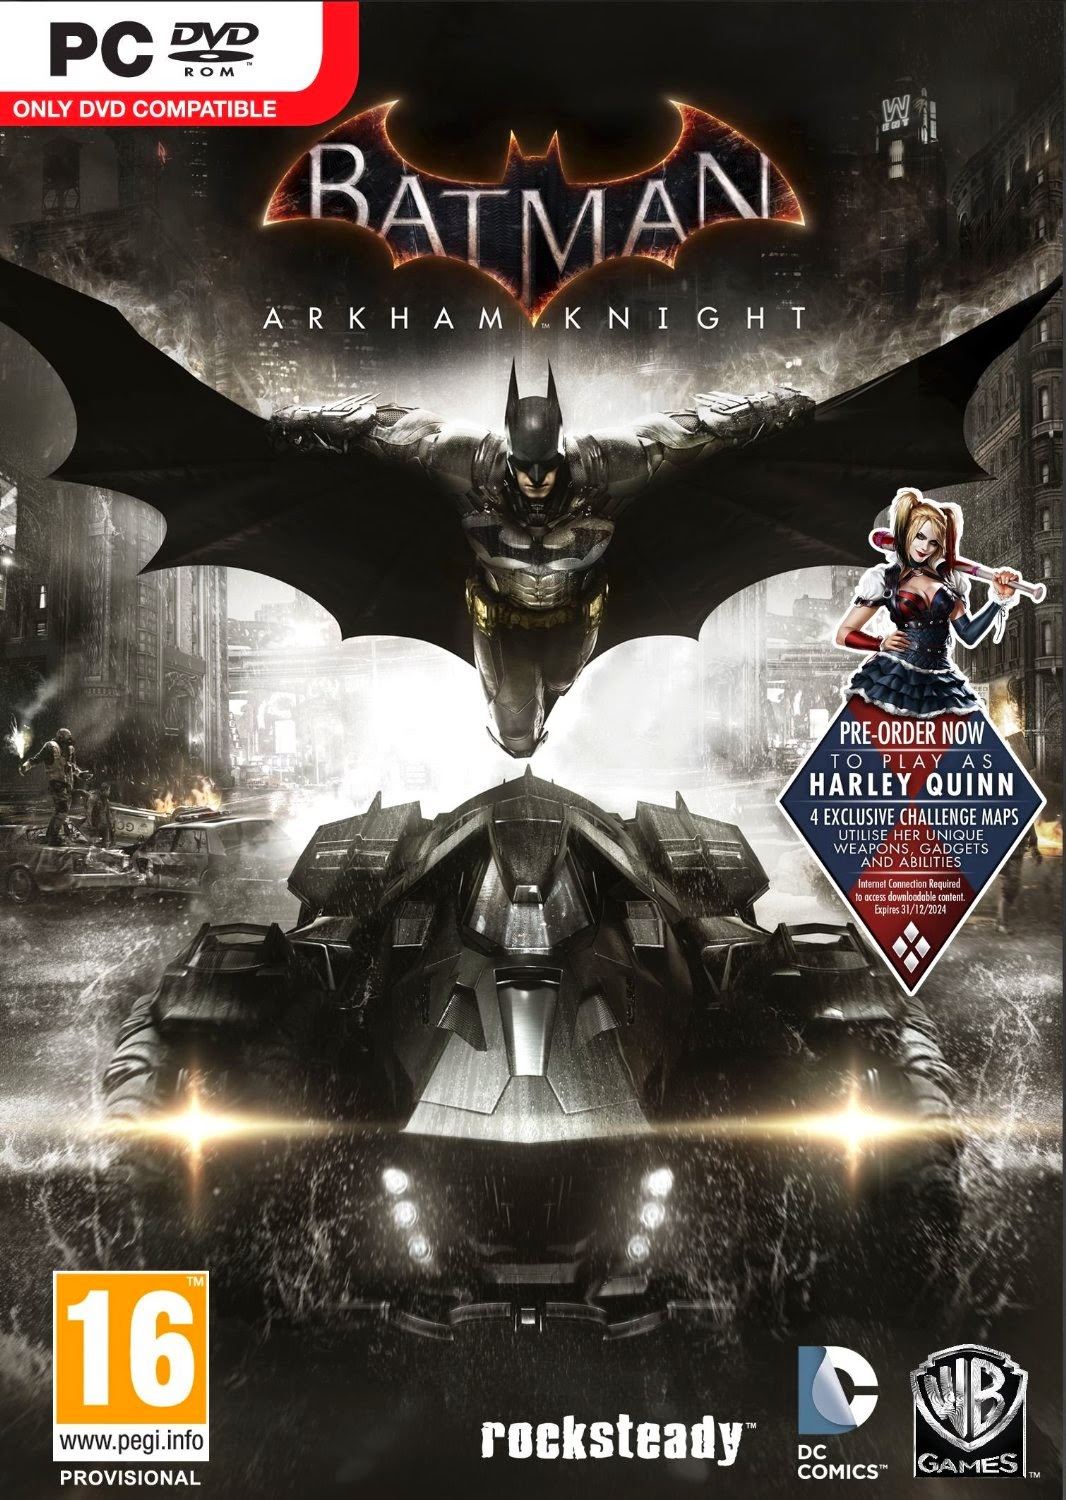 Buy Batman Arkham Knight (PC) Rs. 1,499 only at Amazon.